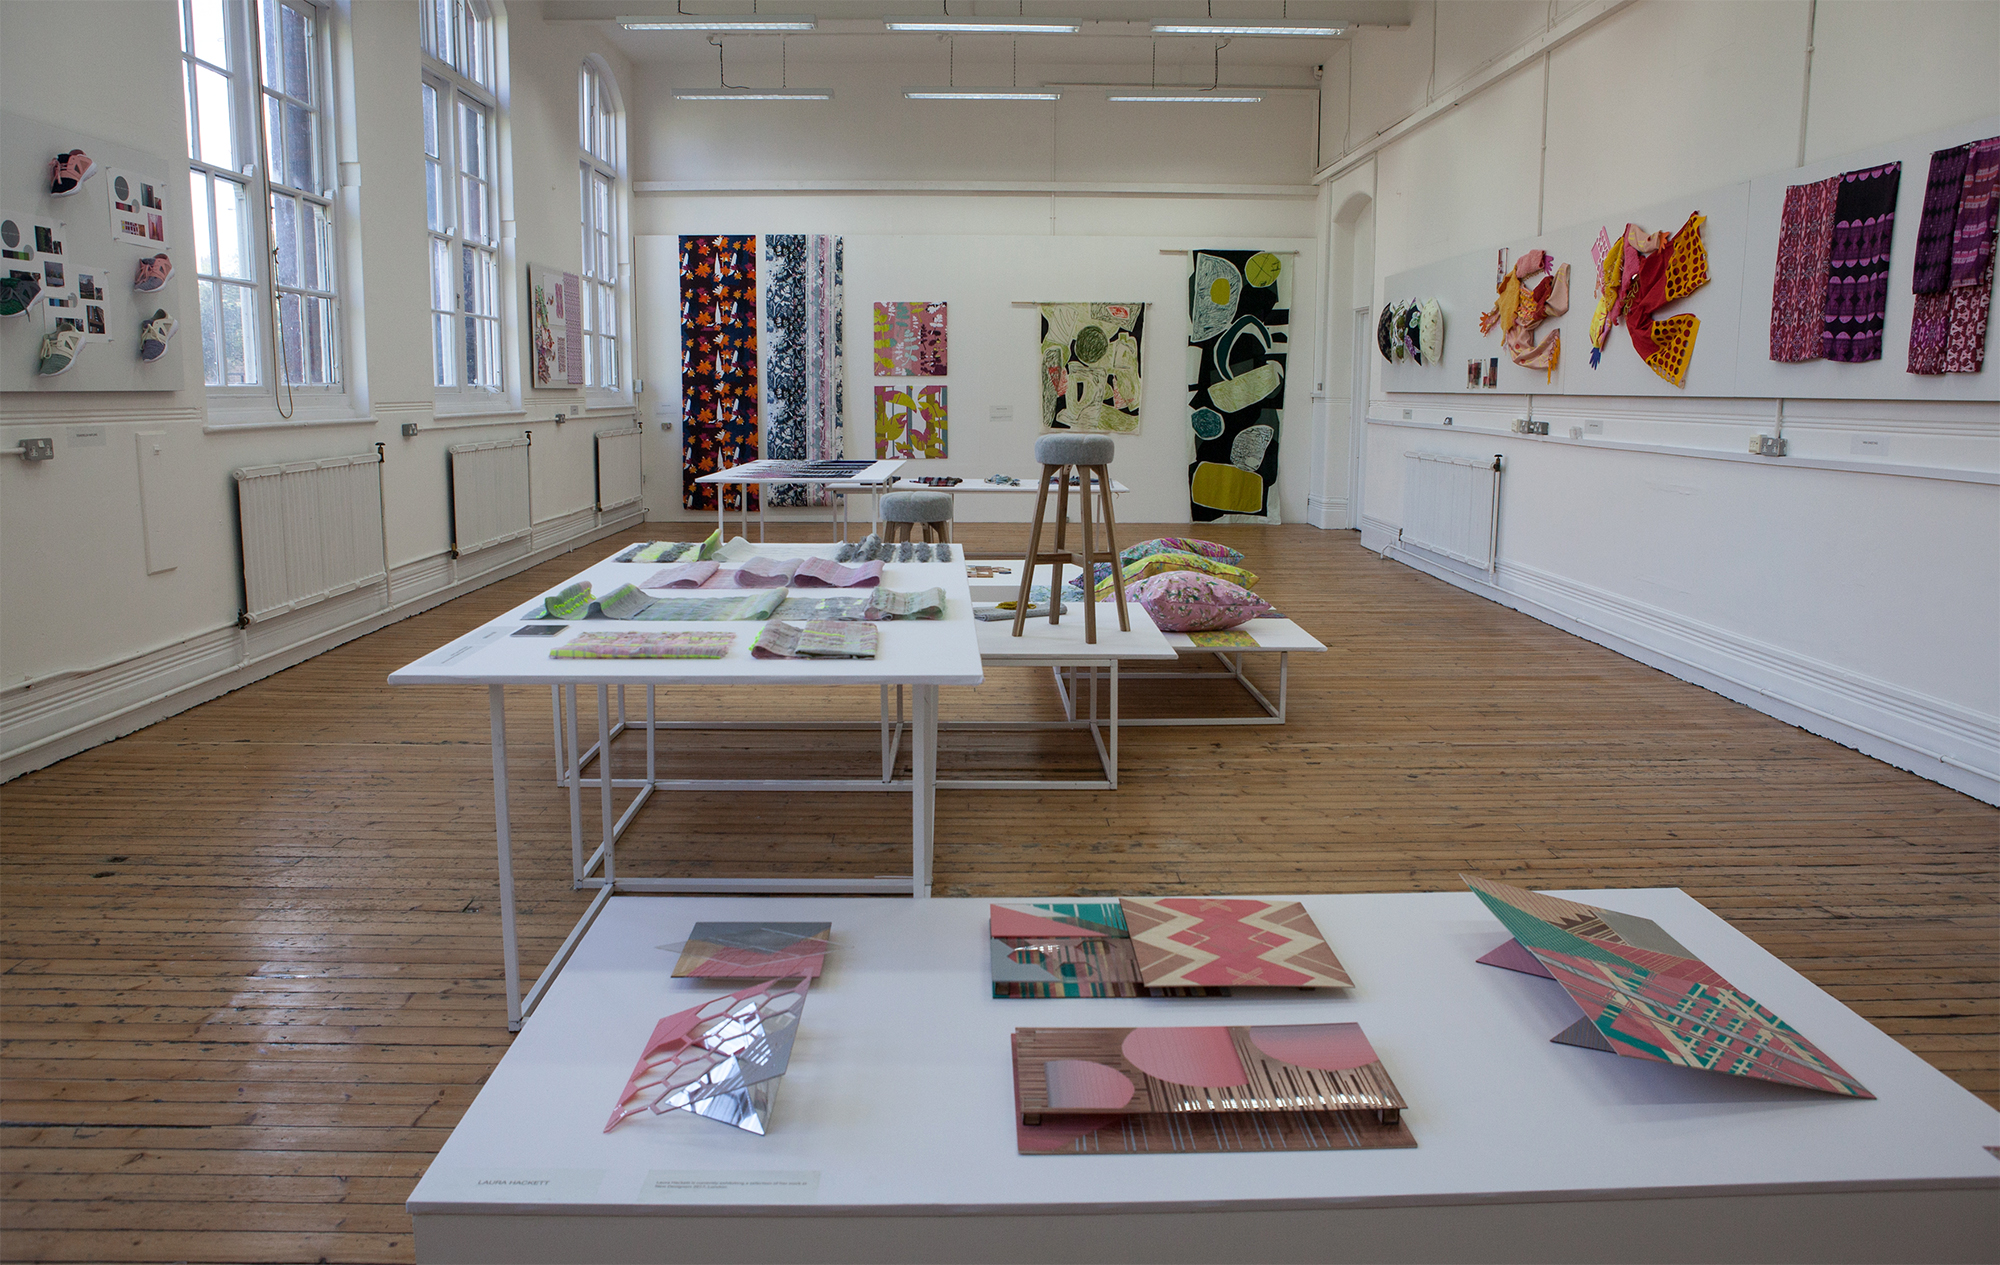 Nua degree shows norwich university of the arts - What degree do you need to be an interior designer ...